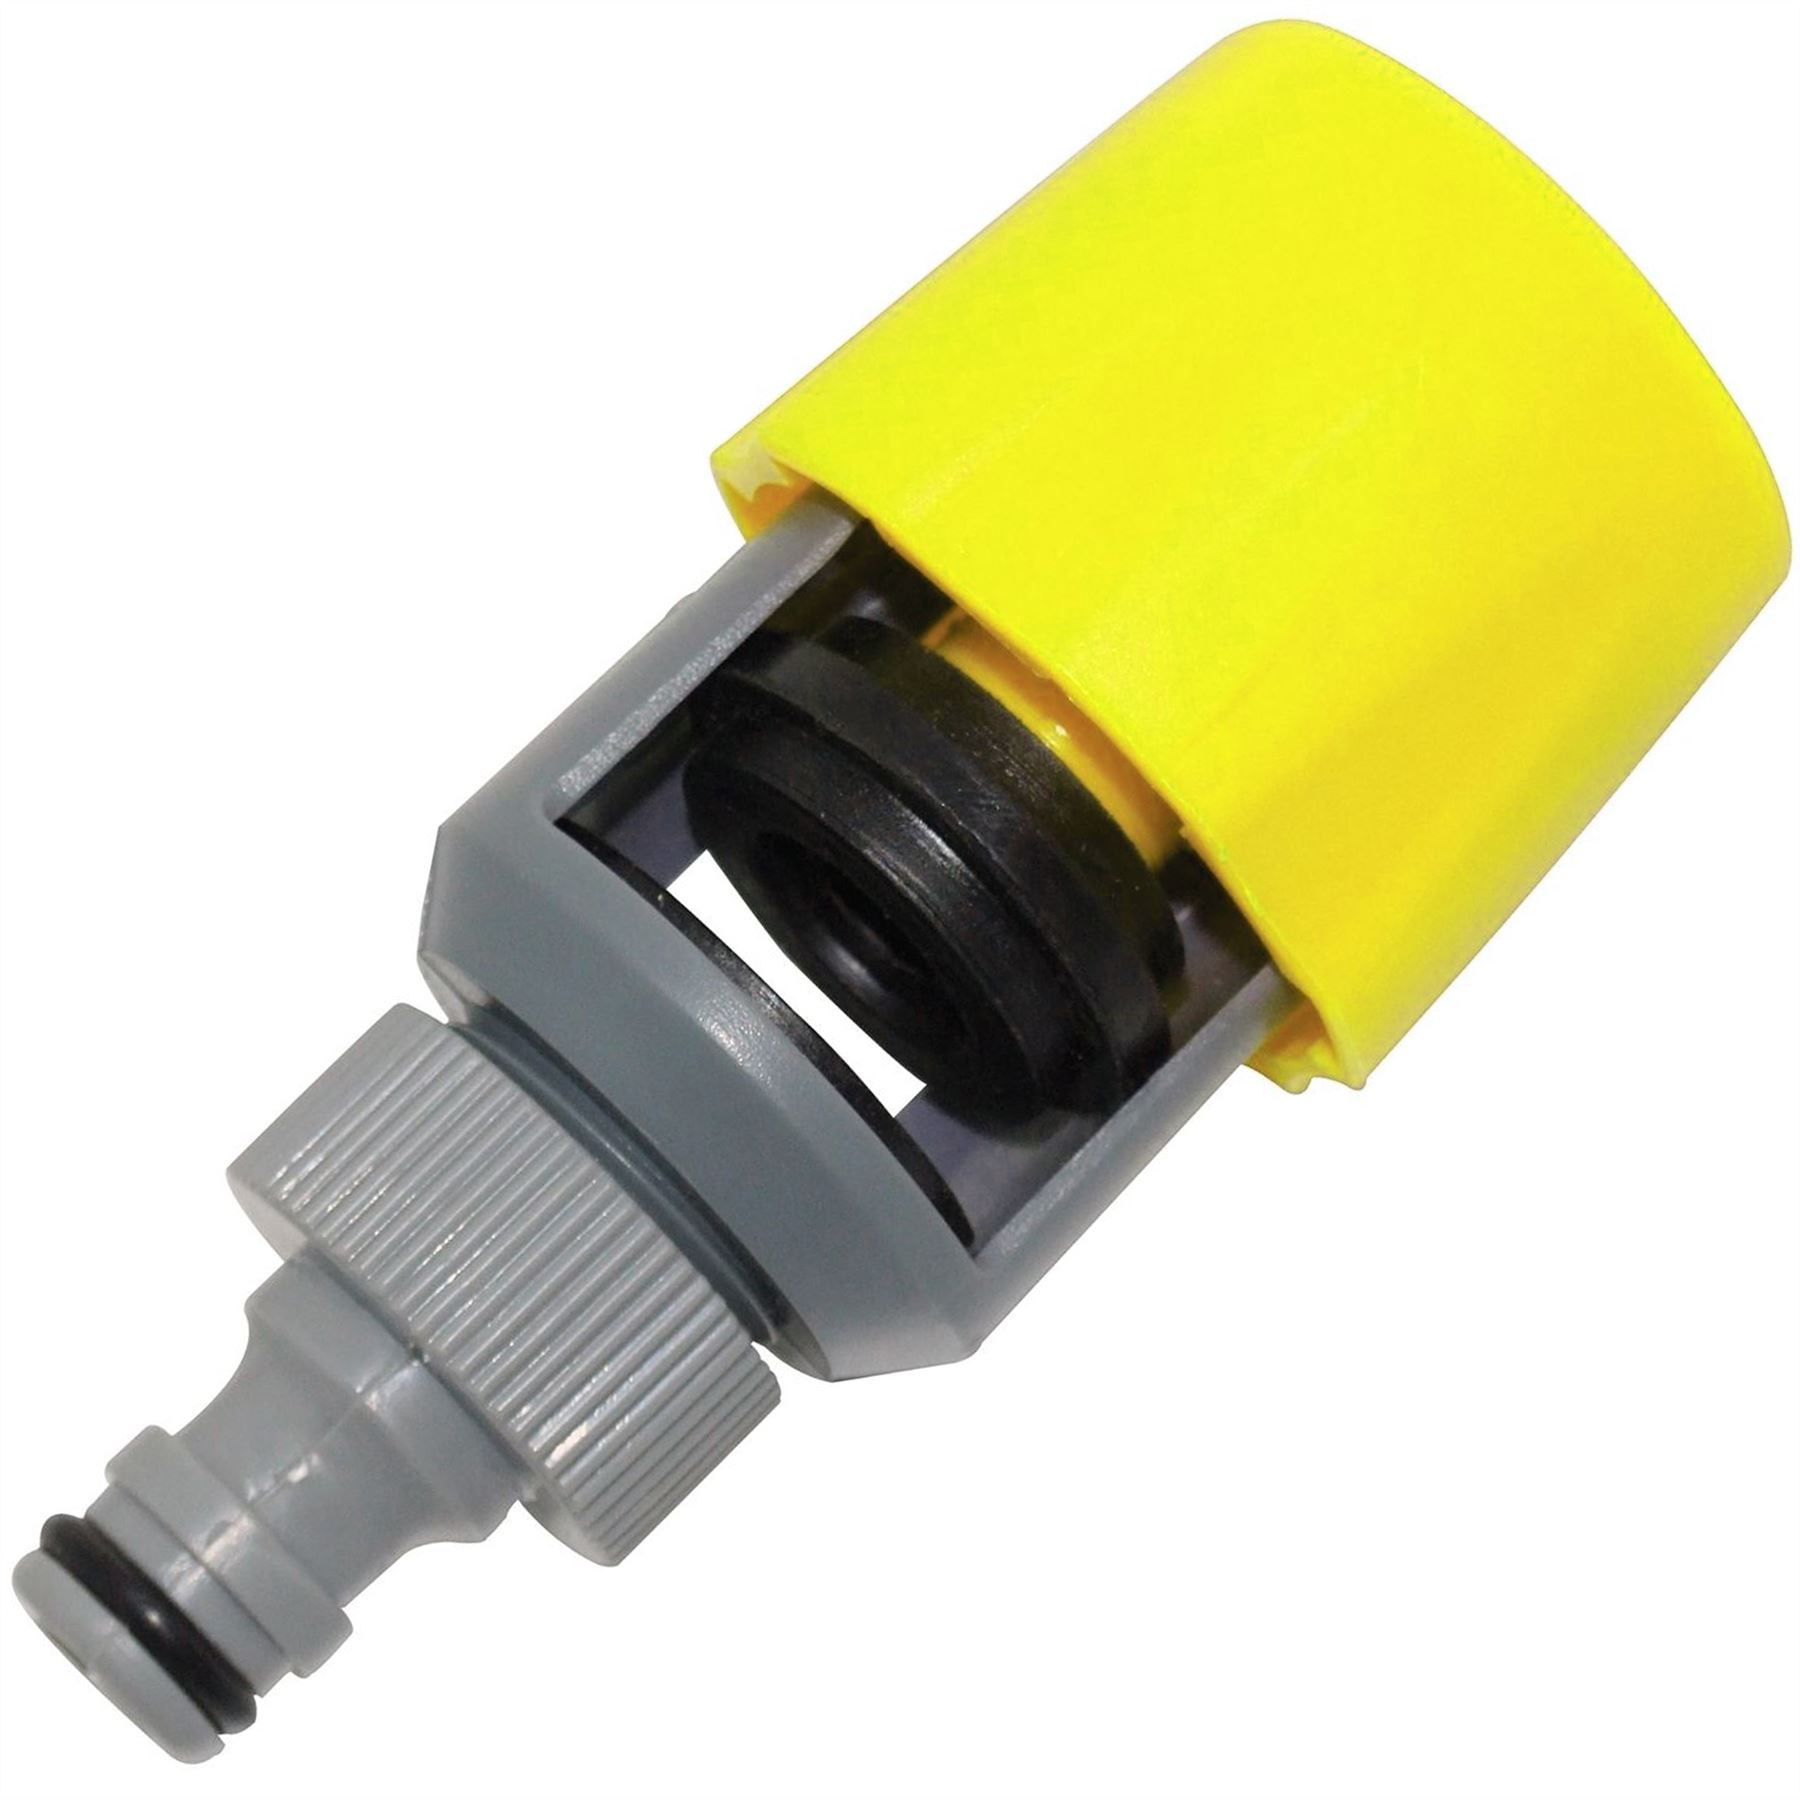 Universal kitchen tap hose pipe adaptor connector rubber mixer round square ebay - Connect hose to kitchen tap ...